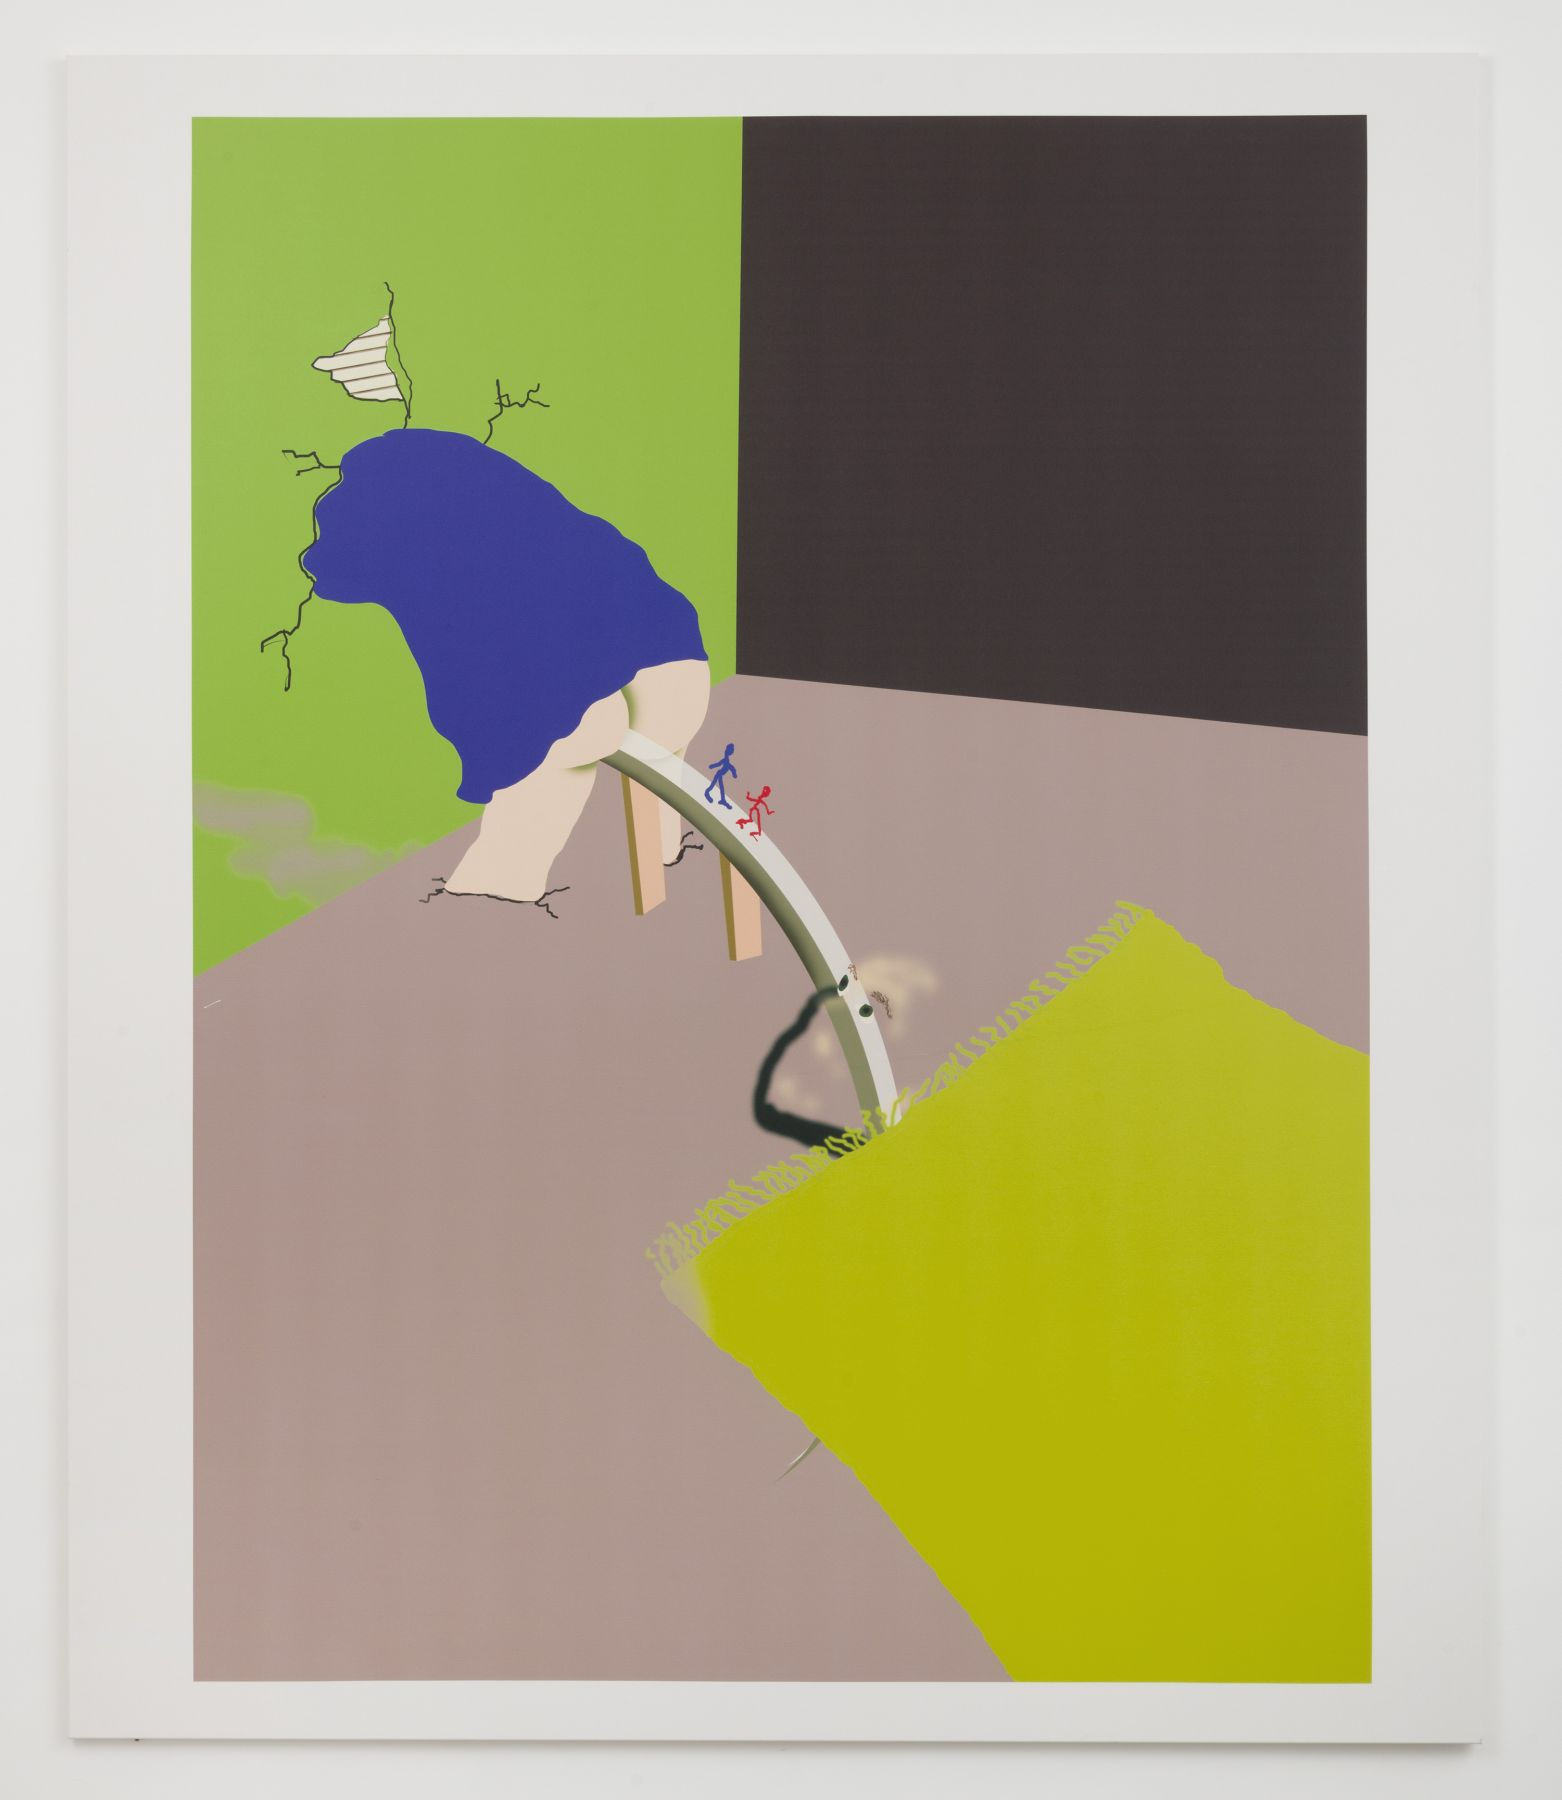 Michael Williams A Resounding Maybe, 2018